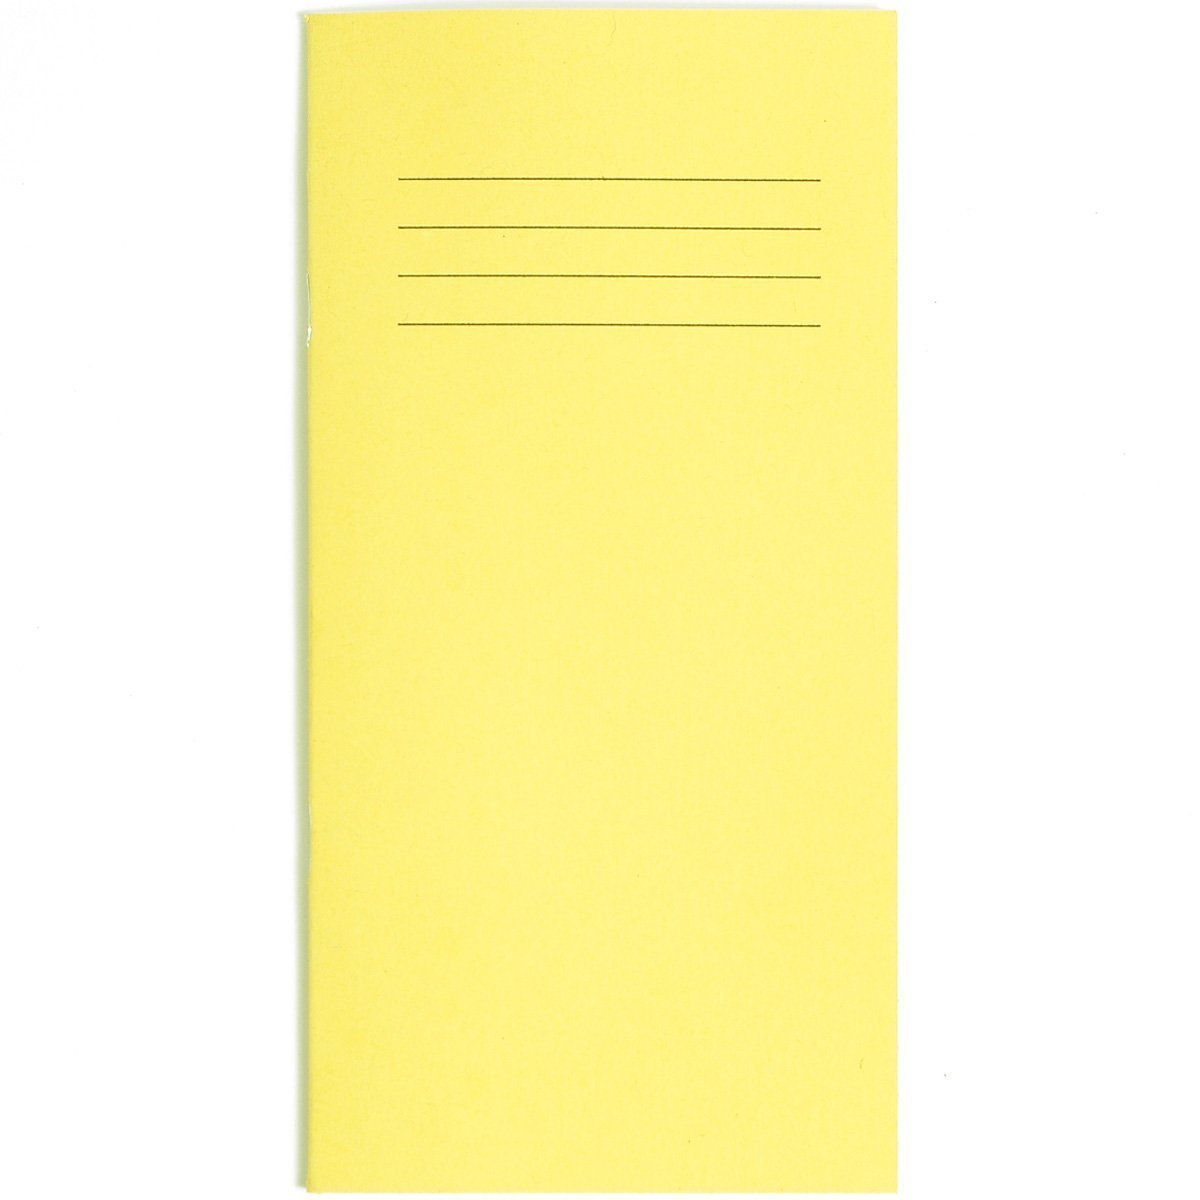 Slim Pocket Vocabulary Notebook - Yellow Cover Spelling Time Table Address Book 32 Pages educational standard 8mm lined -200mm x 100mm - By PARTY DECOR